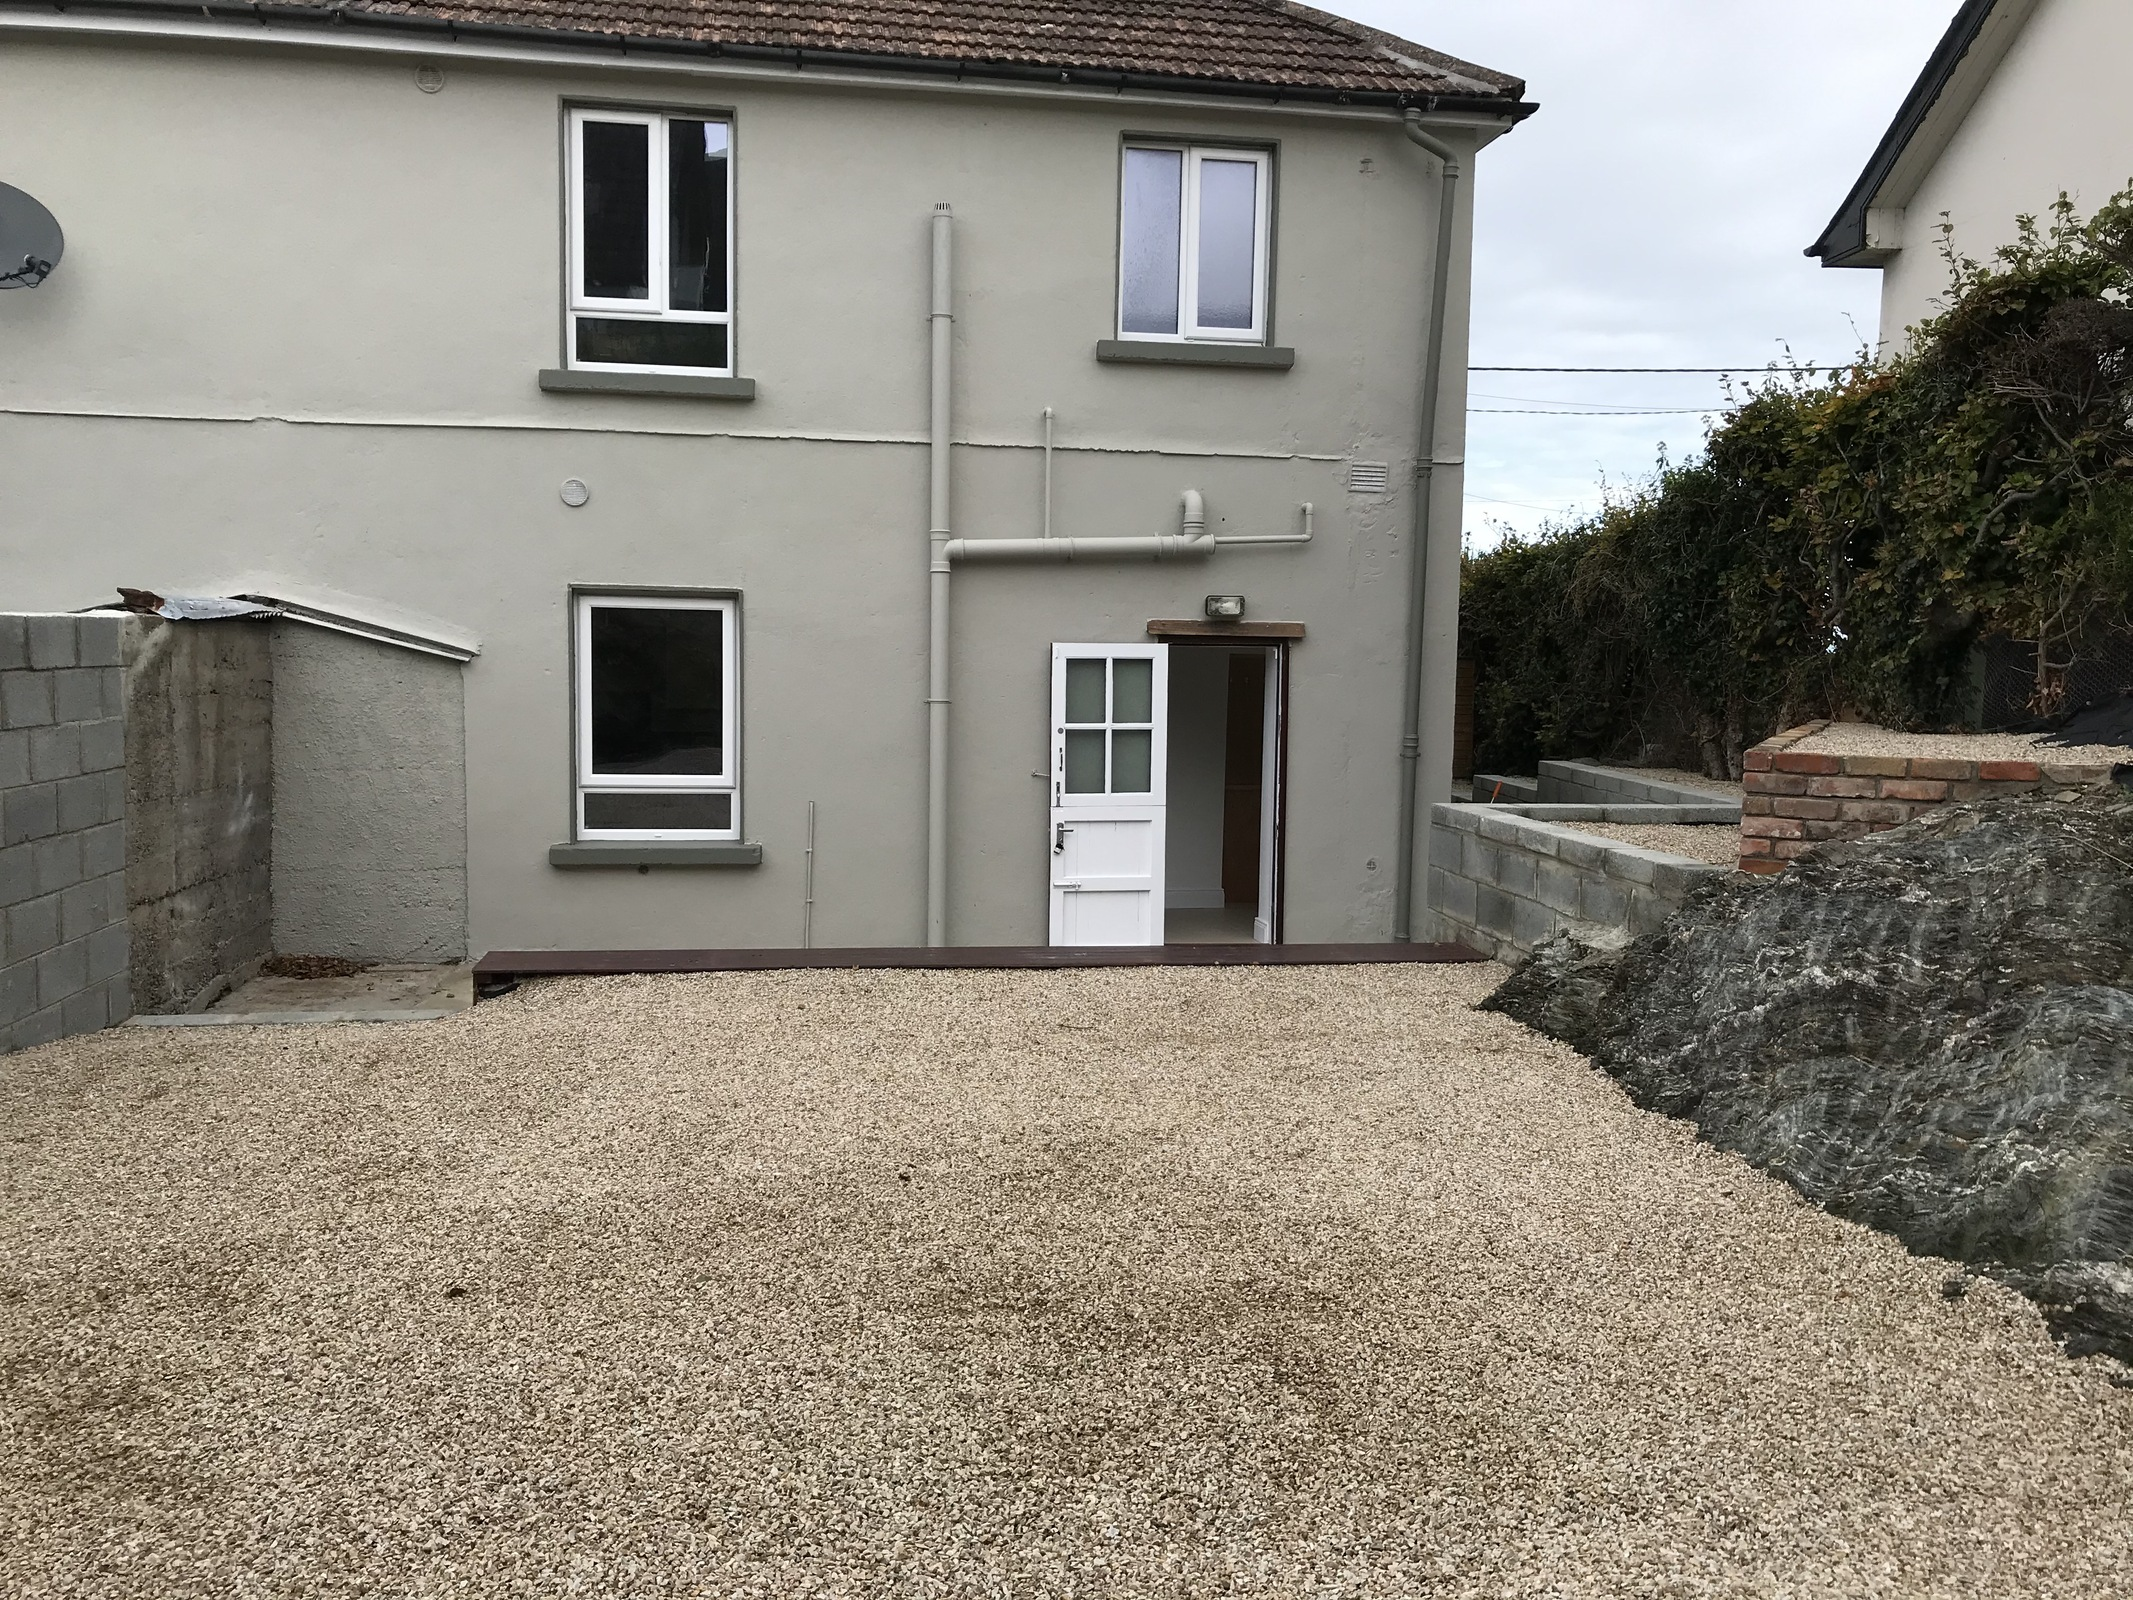 15 Fitzwilliam Road, Wicklow Town, Co. Wicklow